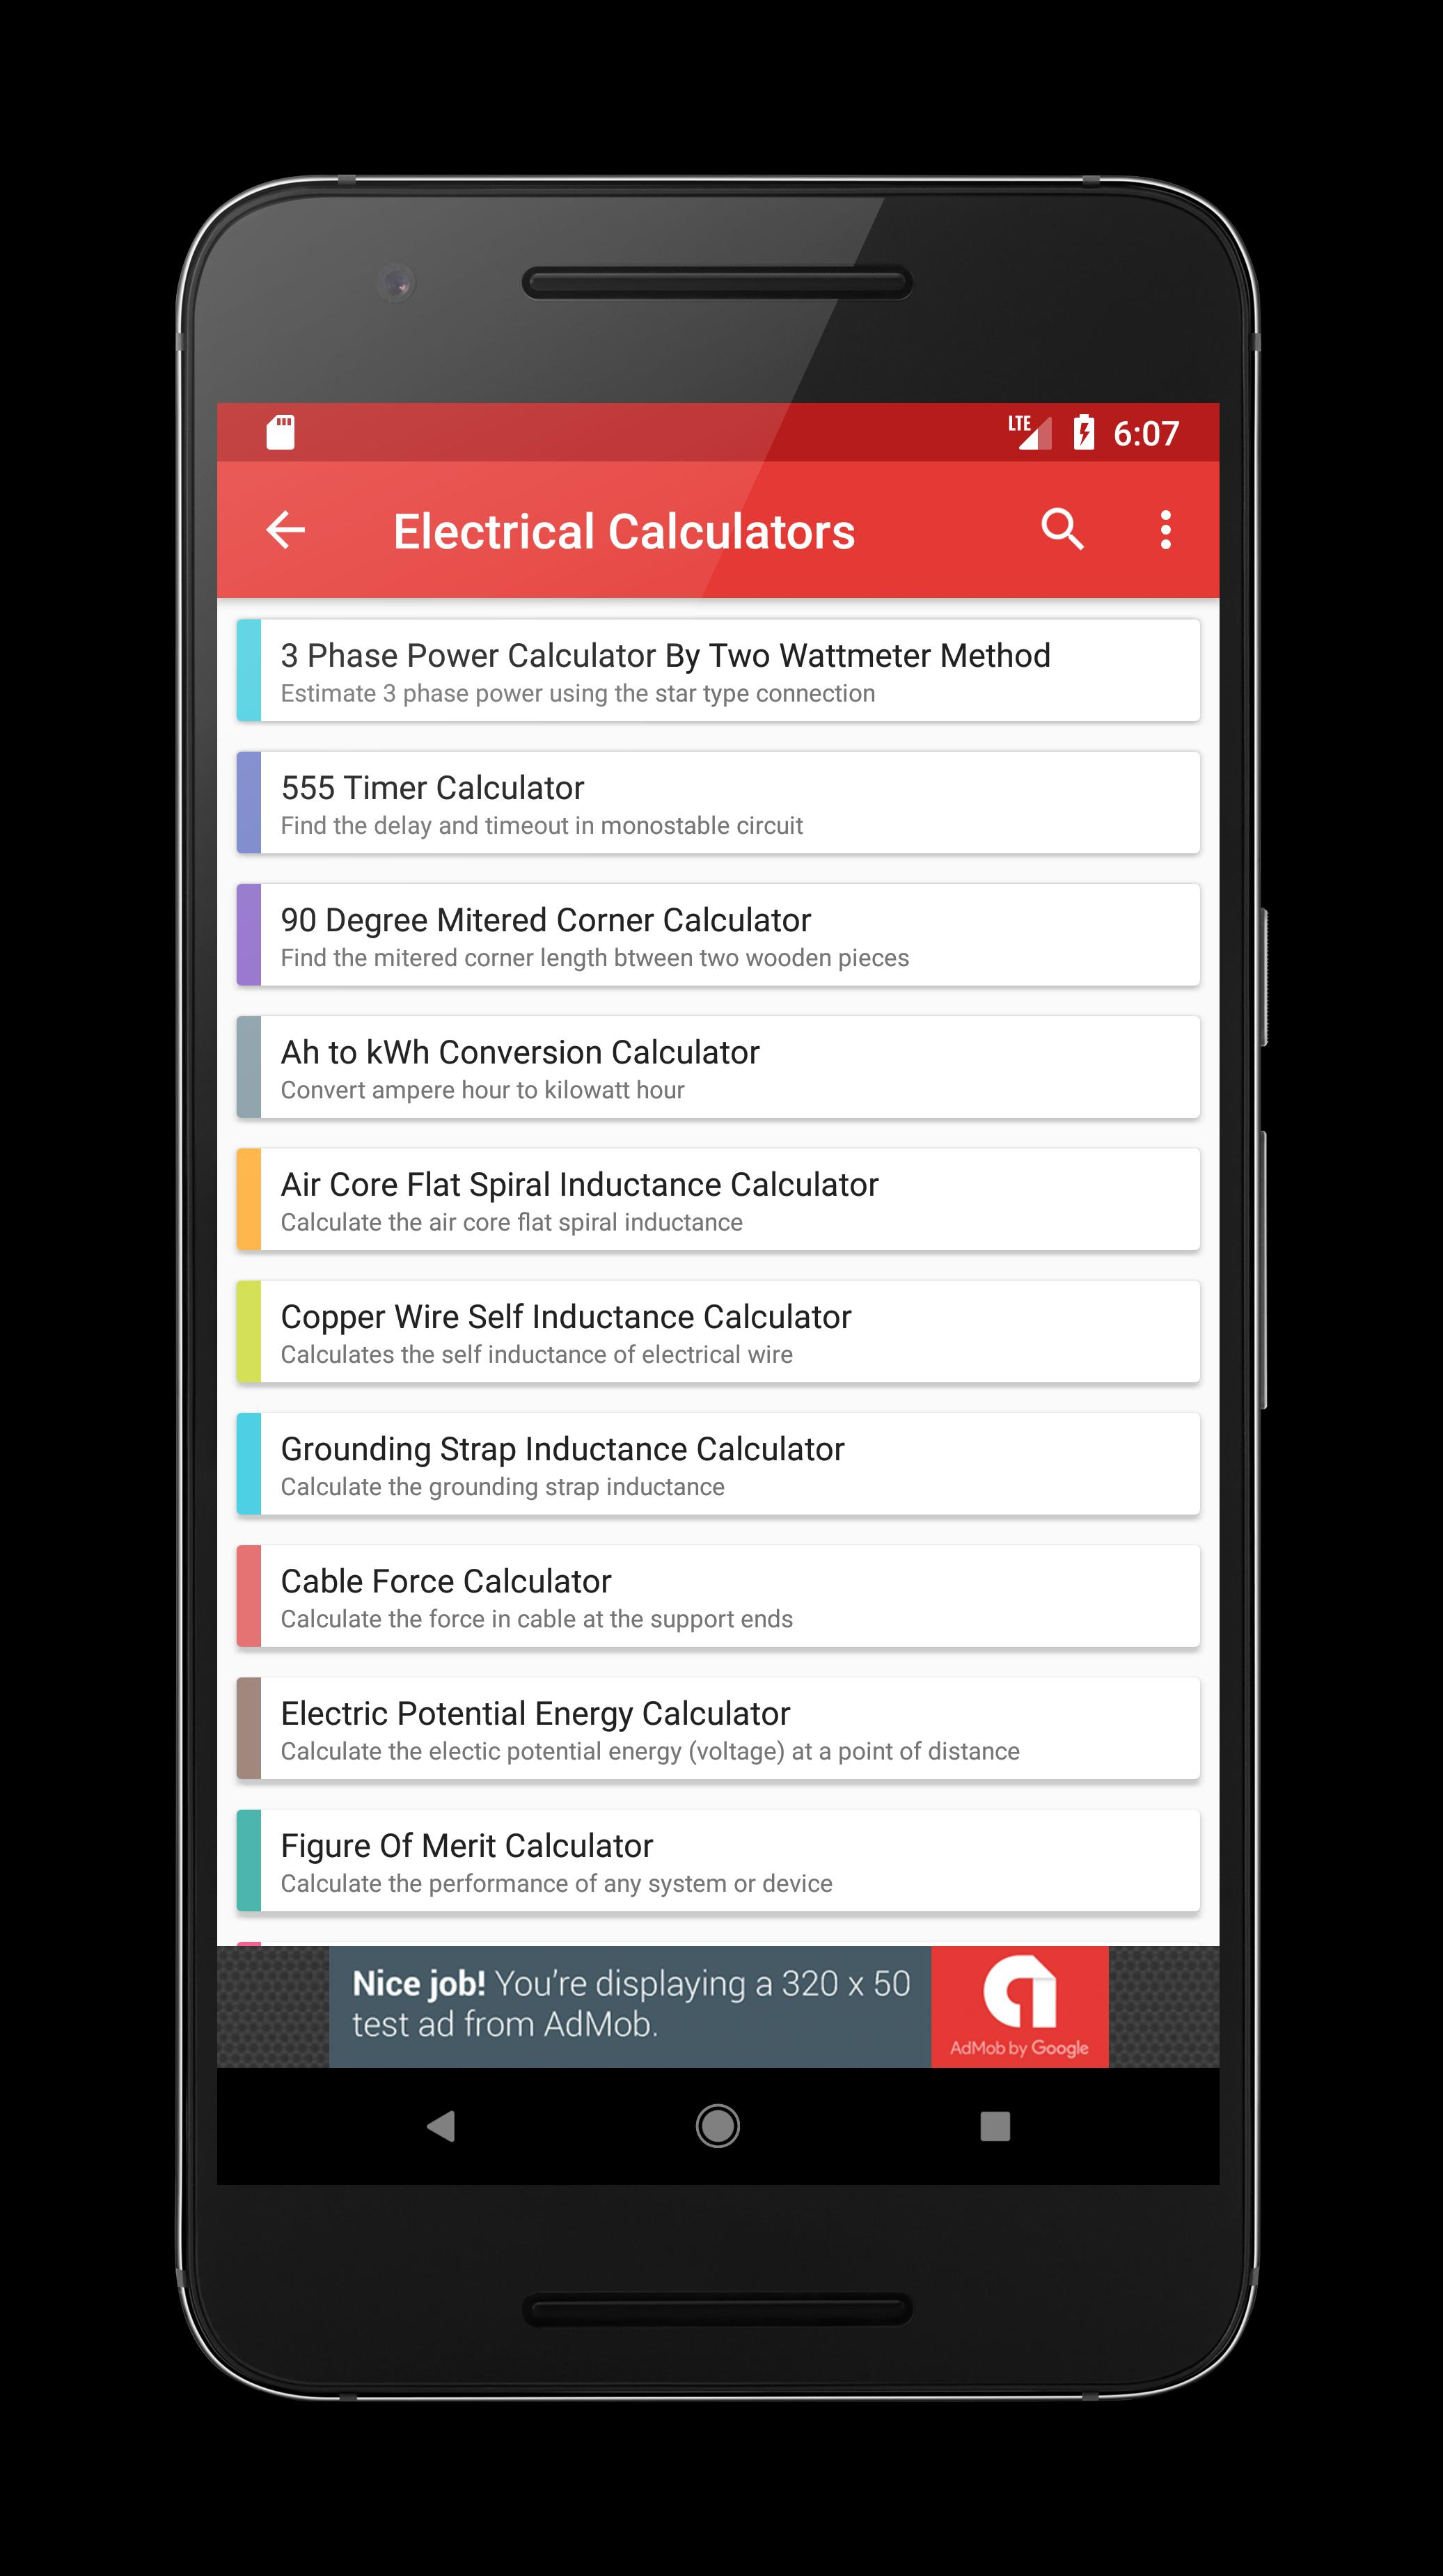 Electrical Calculators for Android - APK Download